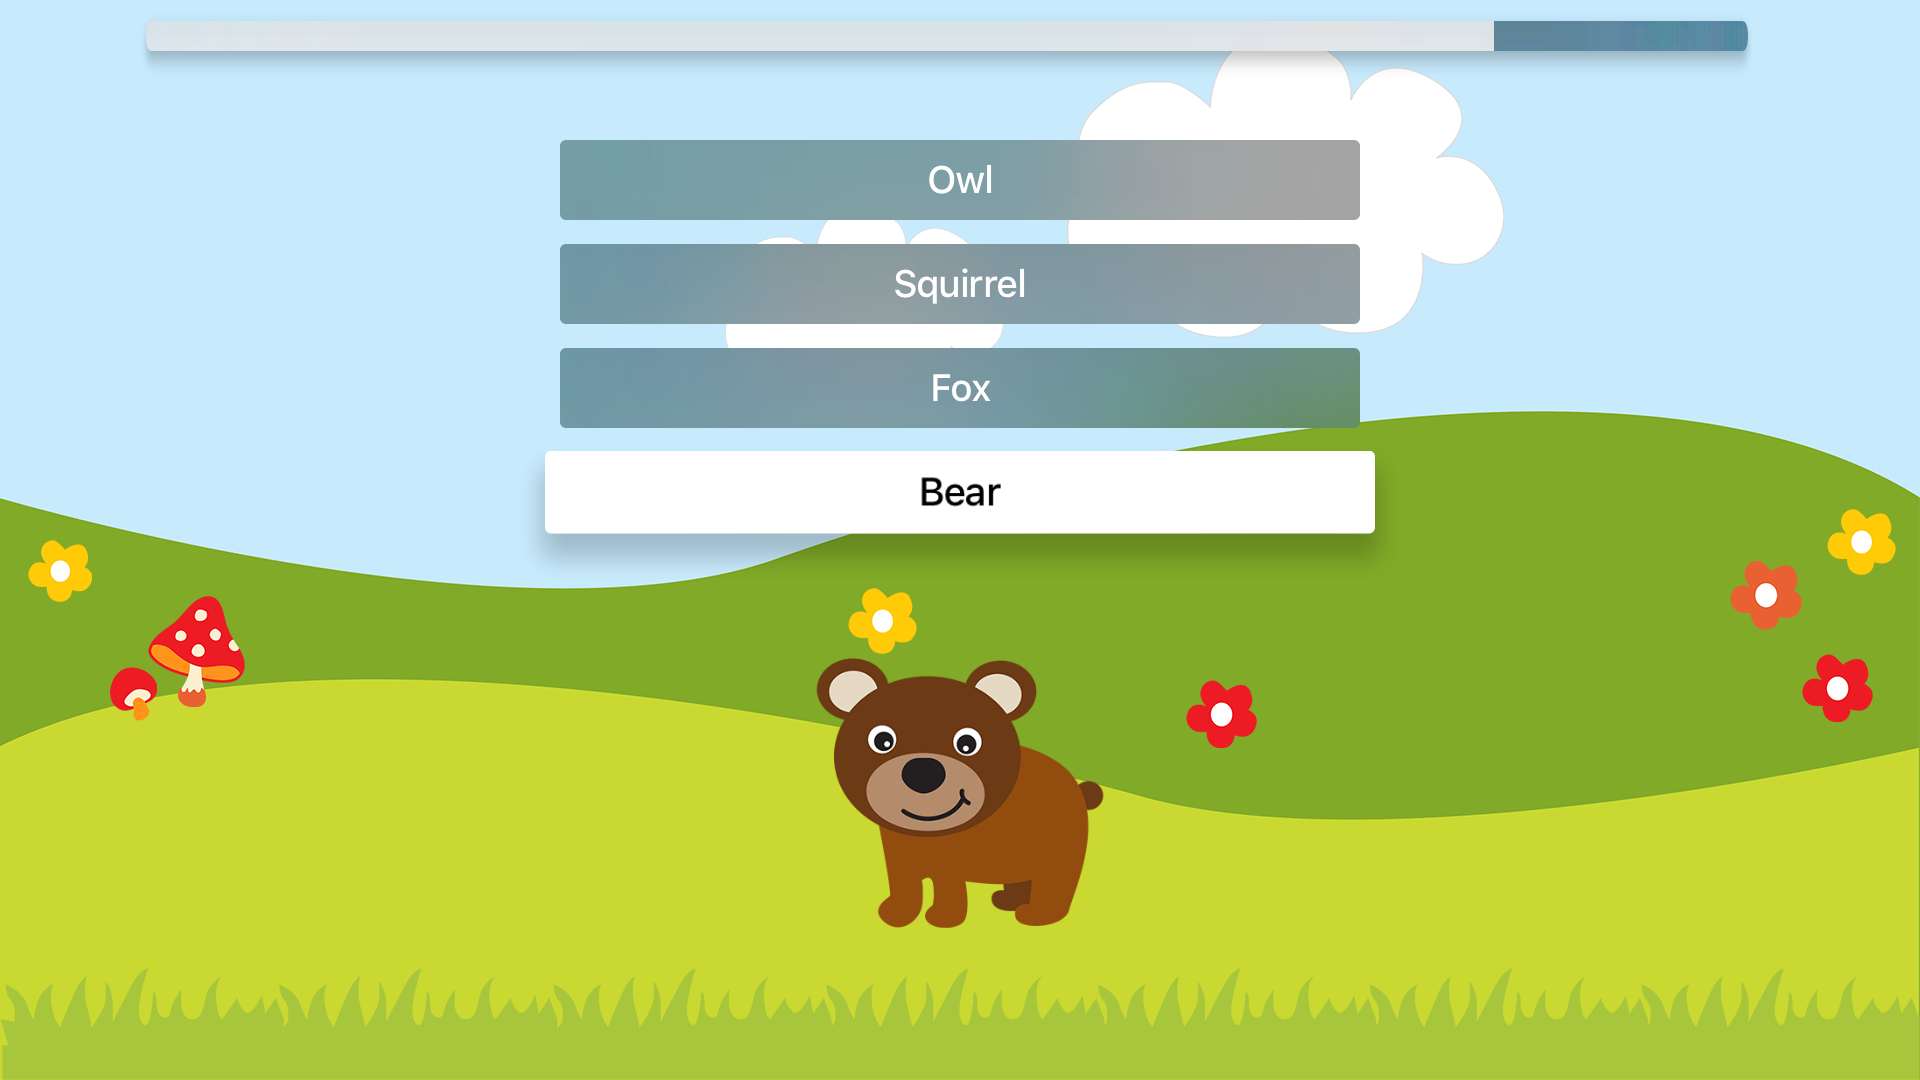 Quiz of Animals screenshot 4